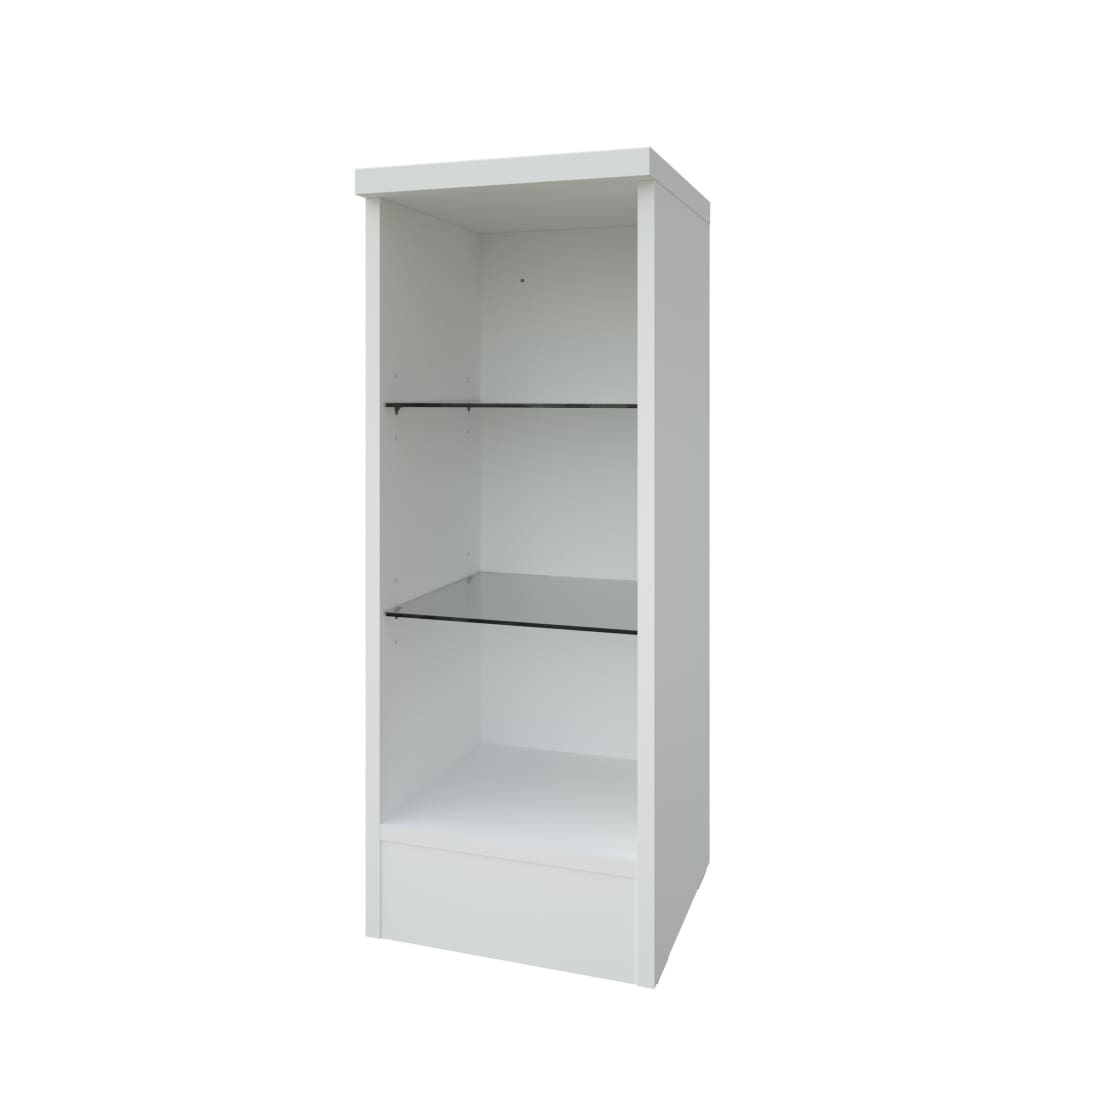 reputable site ef6e8 724d4 Kartell Purity 300mm Open Glass Shelf Unit